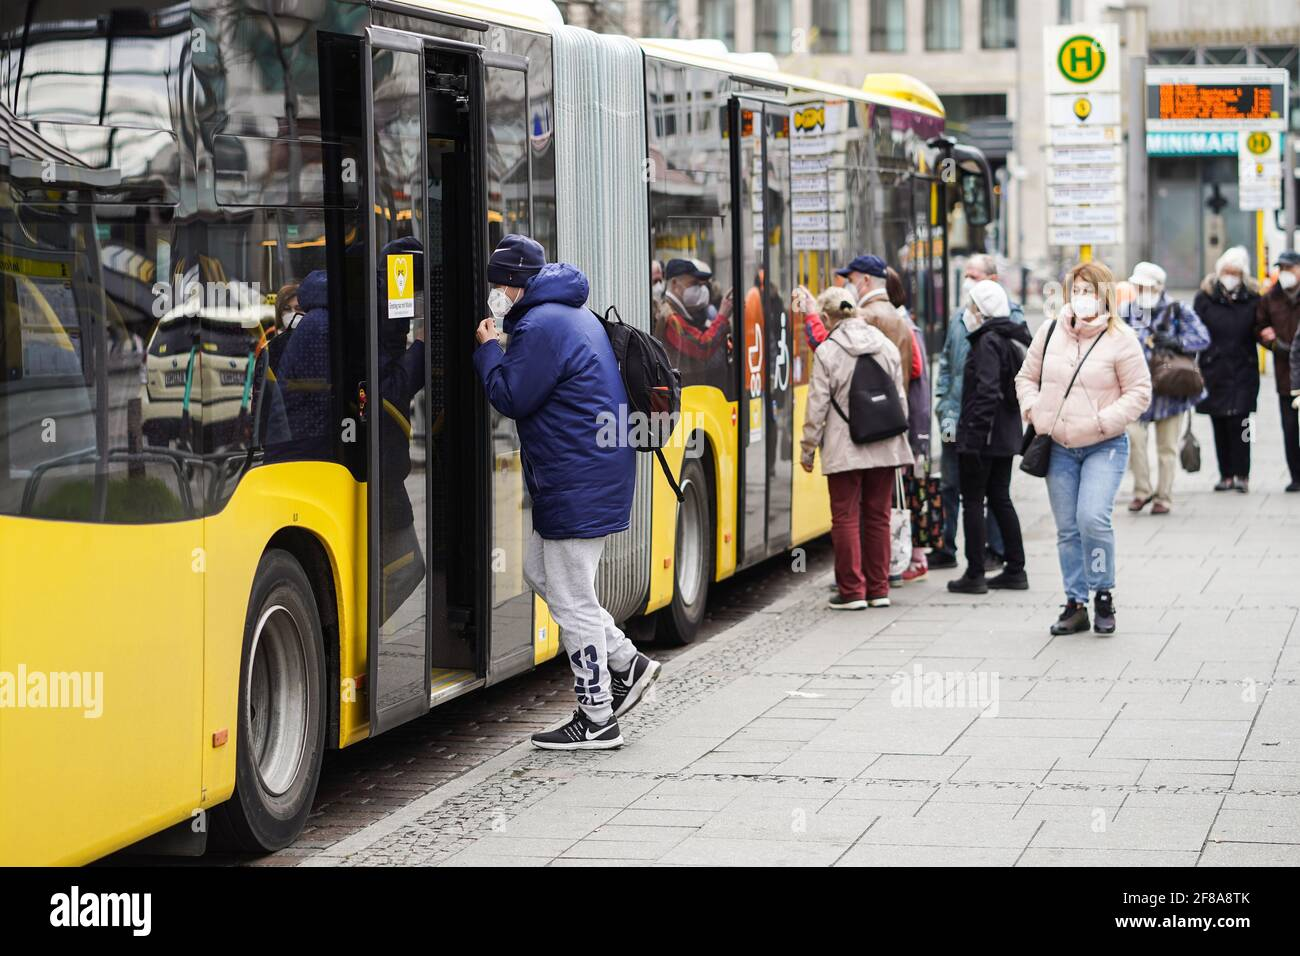 Berlin, Germany. 12th Apr, 2021. People prepare to get on a bus in Berlin, capital of Germany, on April 12, 2021. More than three million COVID-19 infections have been registered in Germany on Monday since the outbreak of the pandemic, according to the Robert Koch Institute (RKI). Credit: Stefan Zeitz/Xinhua/Alamy Live News Stock Photo